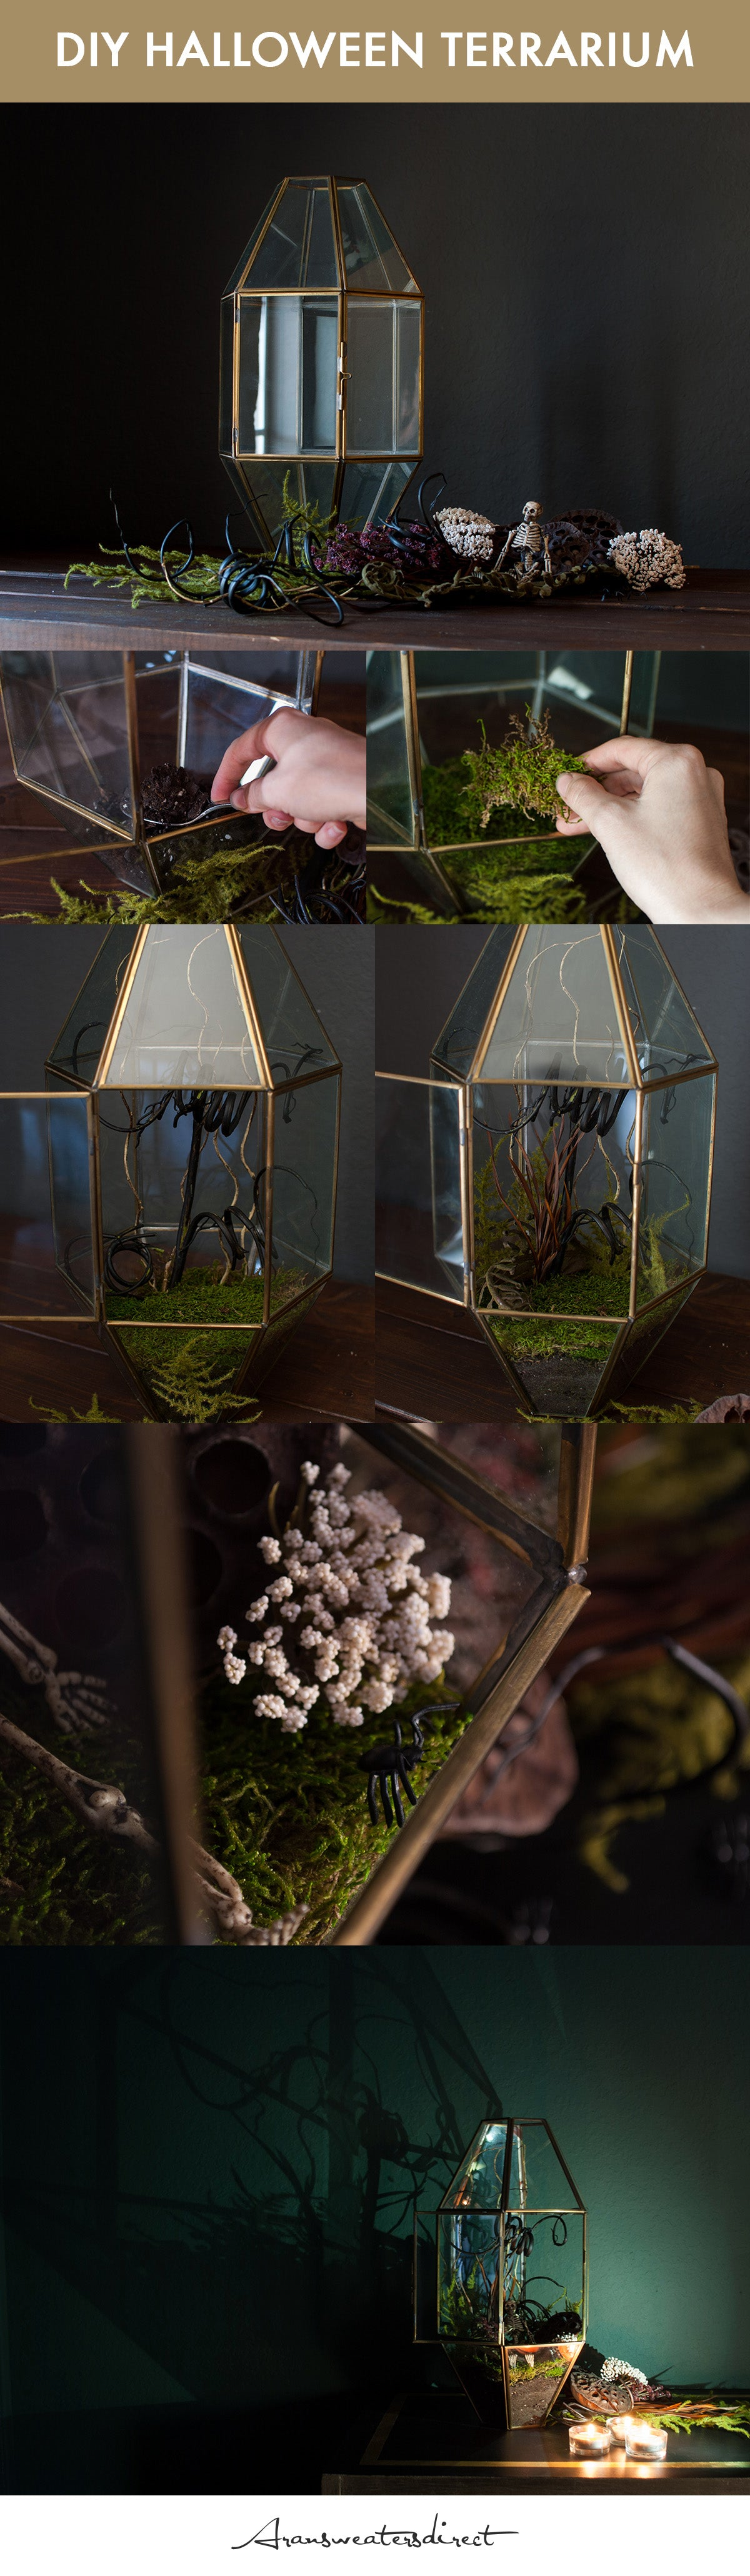 DIY Halloween Terrarium Tutorial #DIY #Halloween